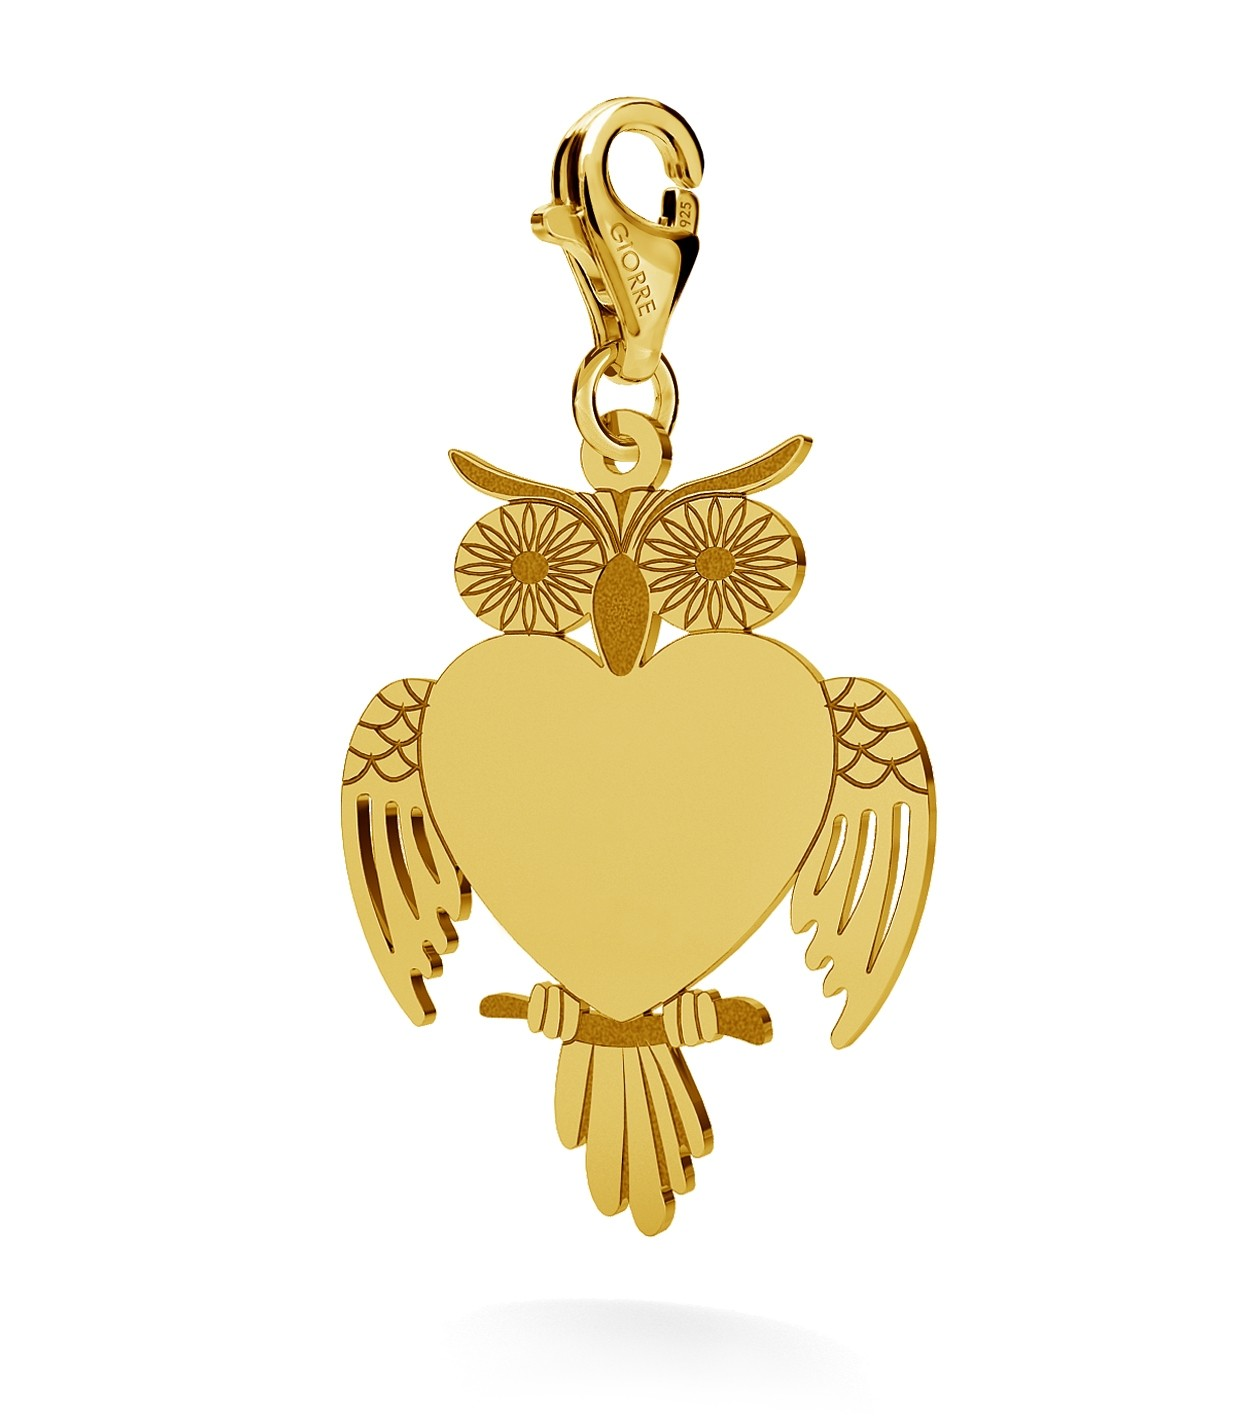 CHARM 121, BIG OWL WITH ENGRAVE, STERLING SILVER (925) RHODIUM OR GOLD PLATED